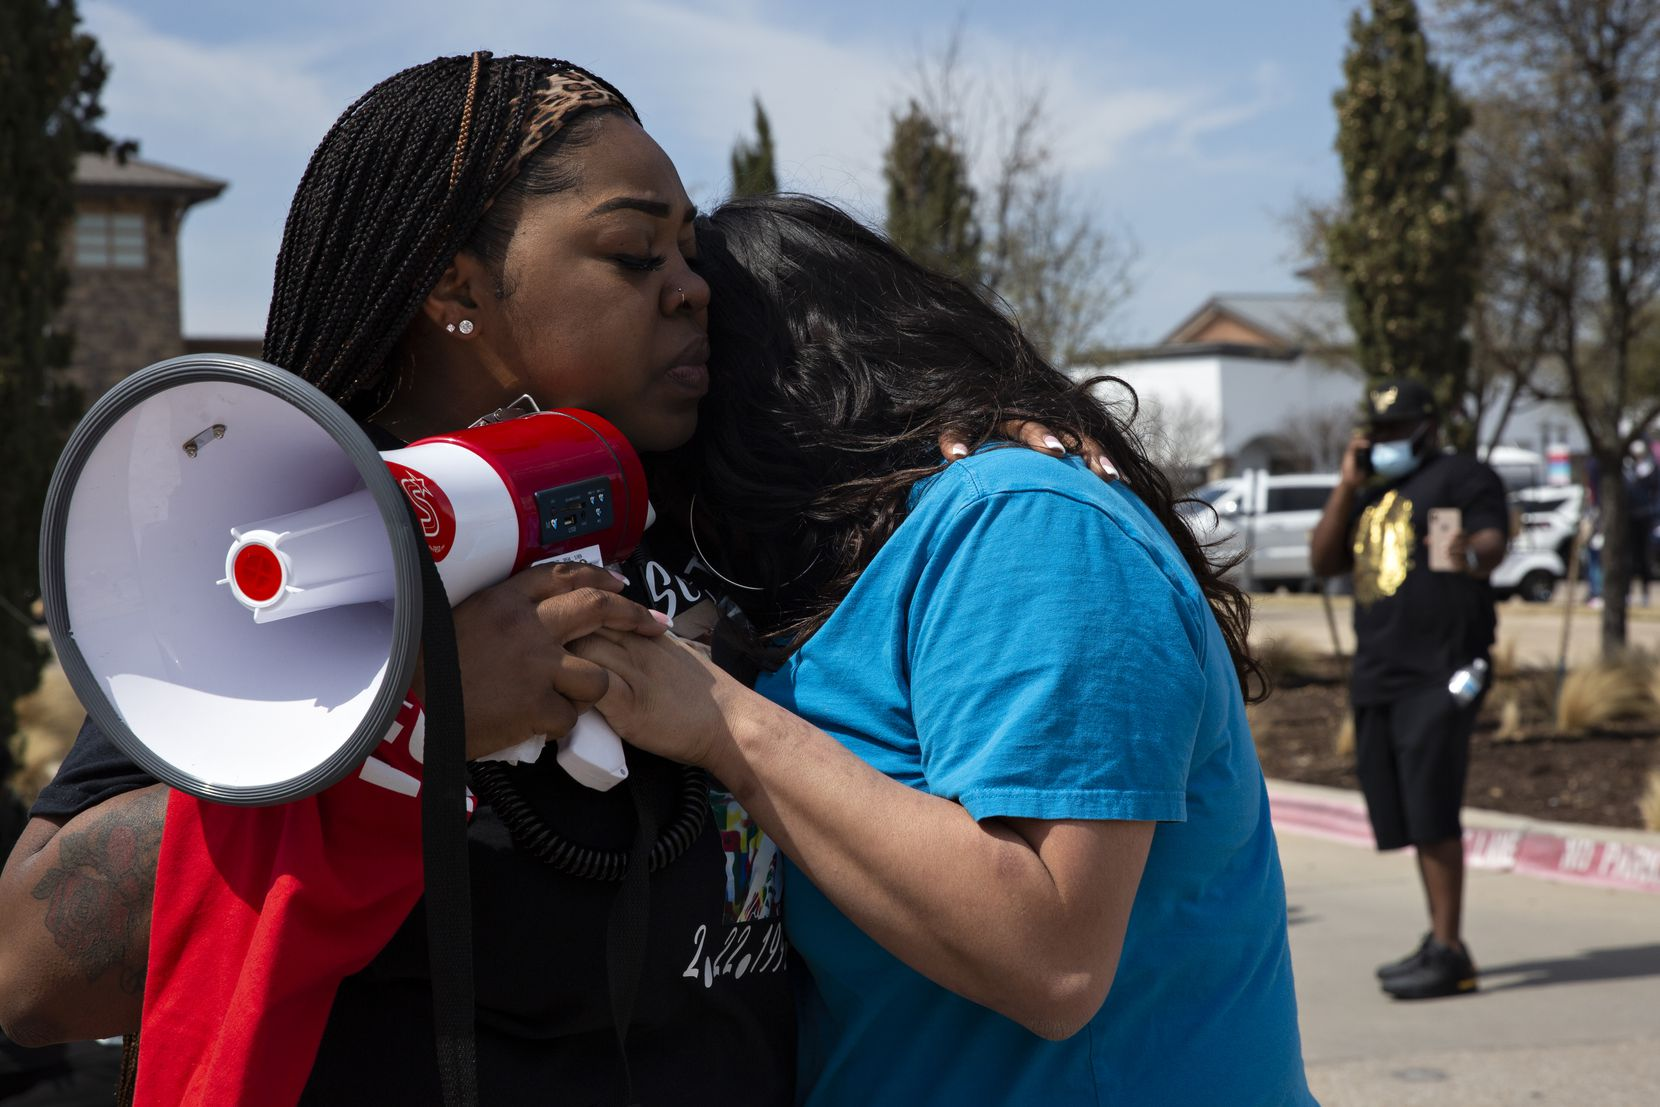 LaChay Batts comforts Monica Diaz after Monica spoke about one of her best friends Marvin Scott III, who died a week prior while in custody at the Collin County Jail on March 14, 2021. Friends and family of Marvin organized a march through the Allen Outlets on Sunday, March 21, 2021, where he was arrested. Monica spoke about MarvinÕs seemingly endless kindness, crying as she told the crowd ÒEven when I was at my worst, he told me I was beautiful.Ó (Shelby Tauber/Special Contributor)